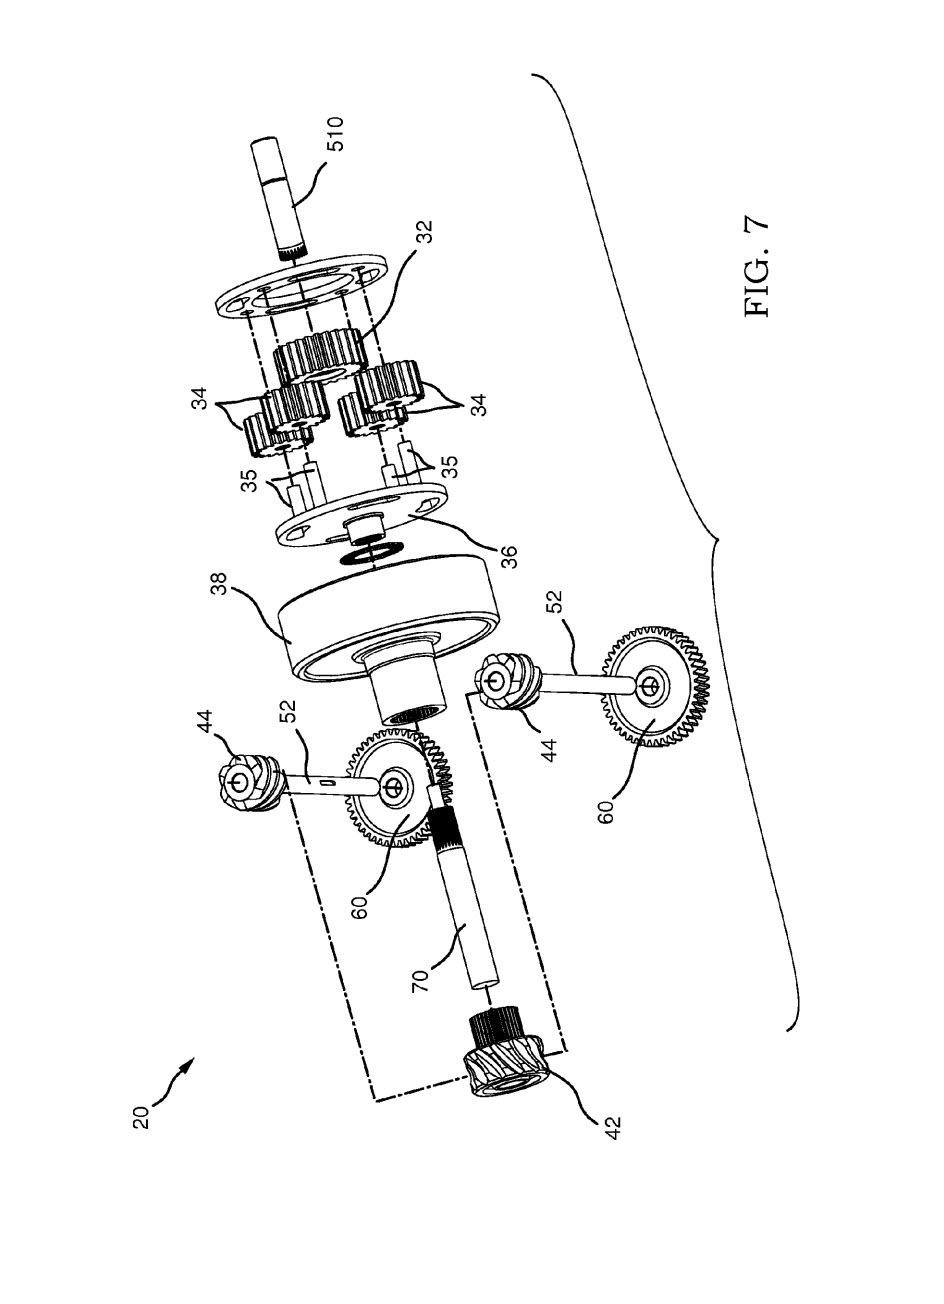 patent drawing exploded view